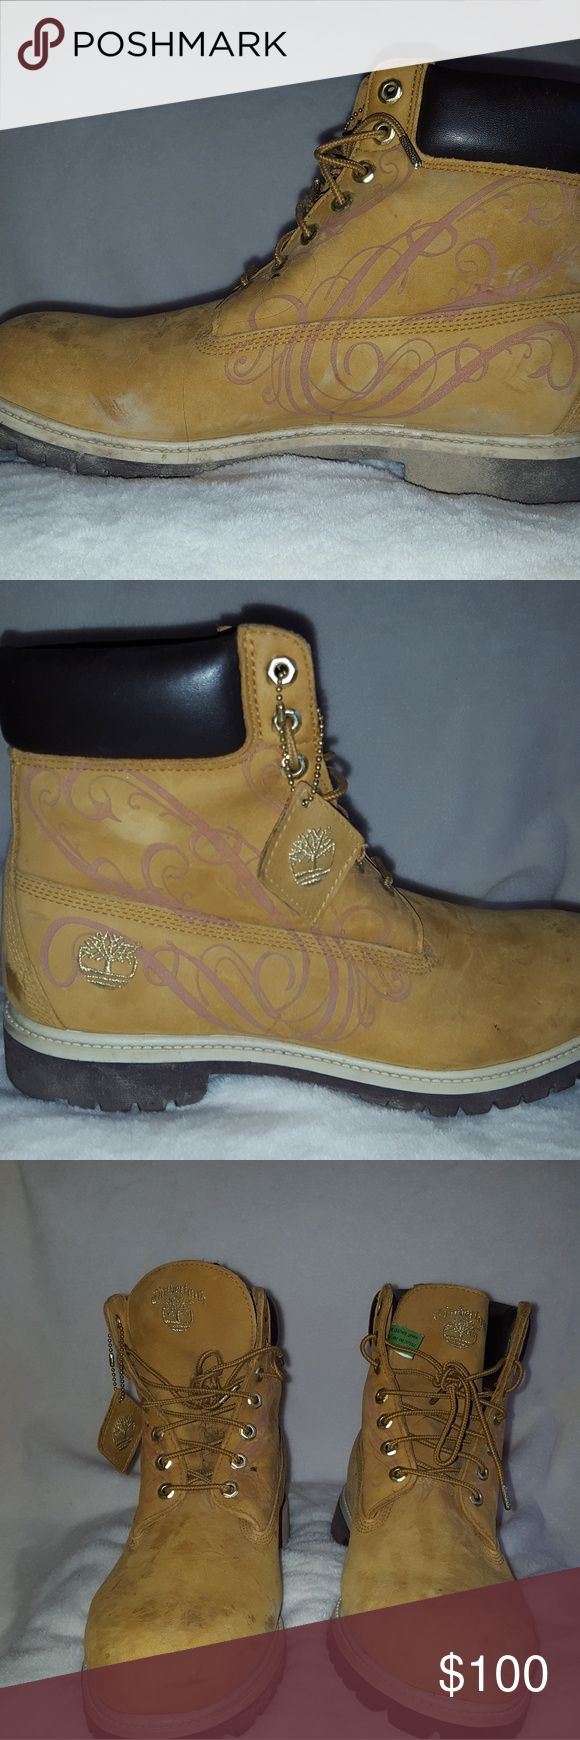 Mens Timberland boots Mens Timberland boots. Only worn a few times. Timberland Shoes Boots